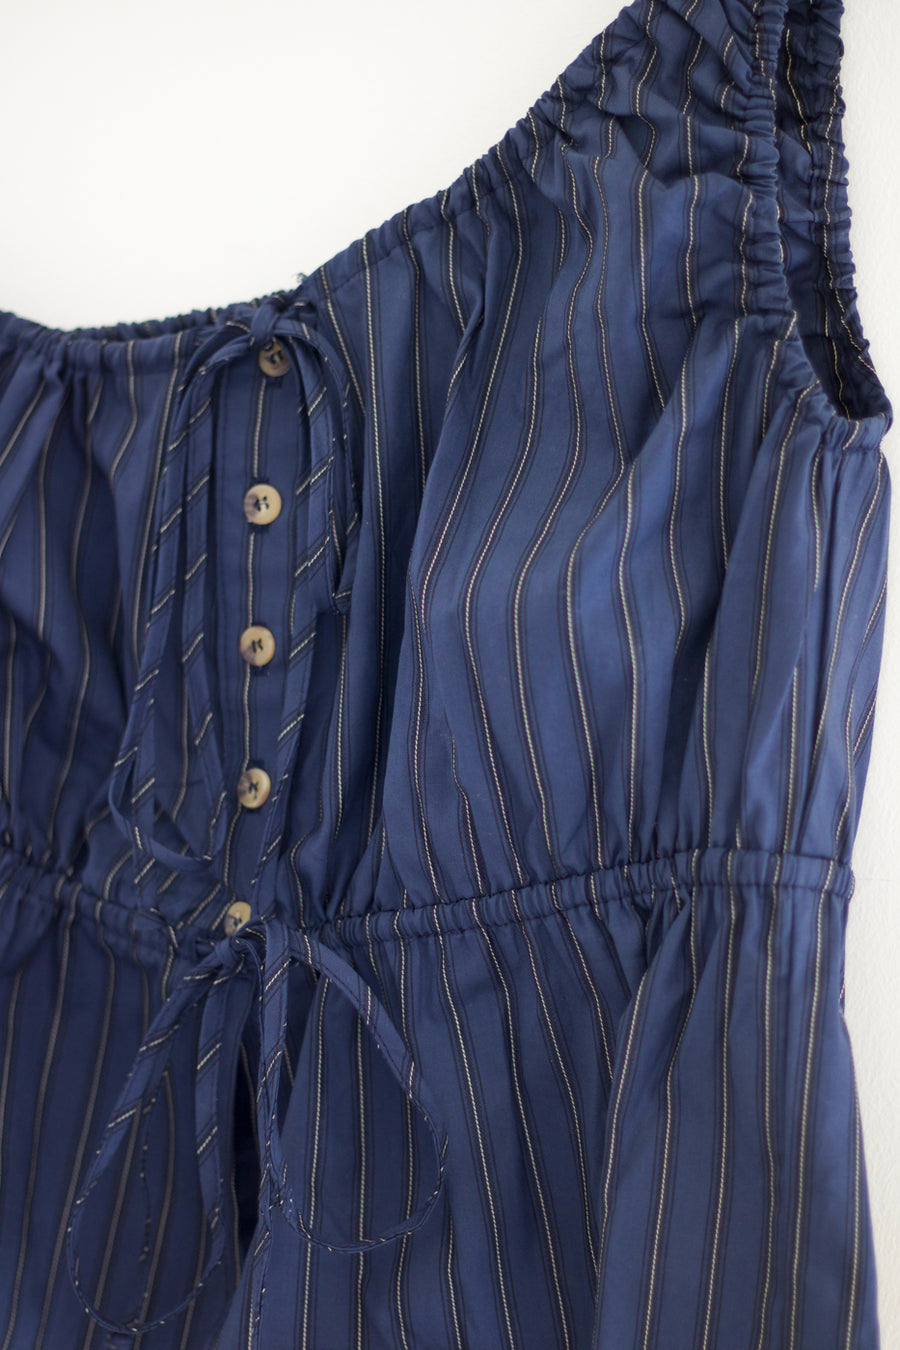 Fia Top, Pinstripe Navy